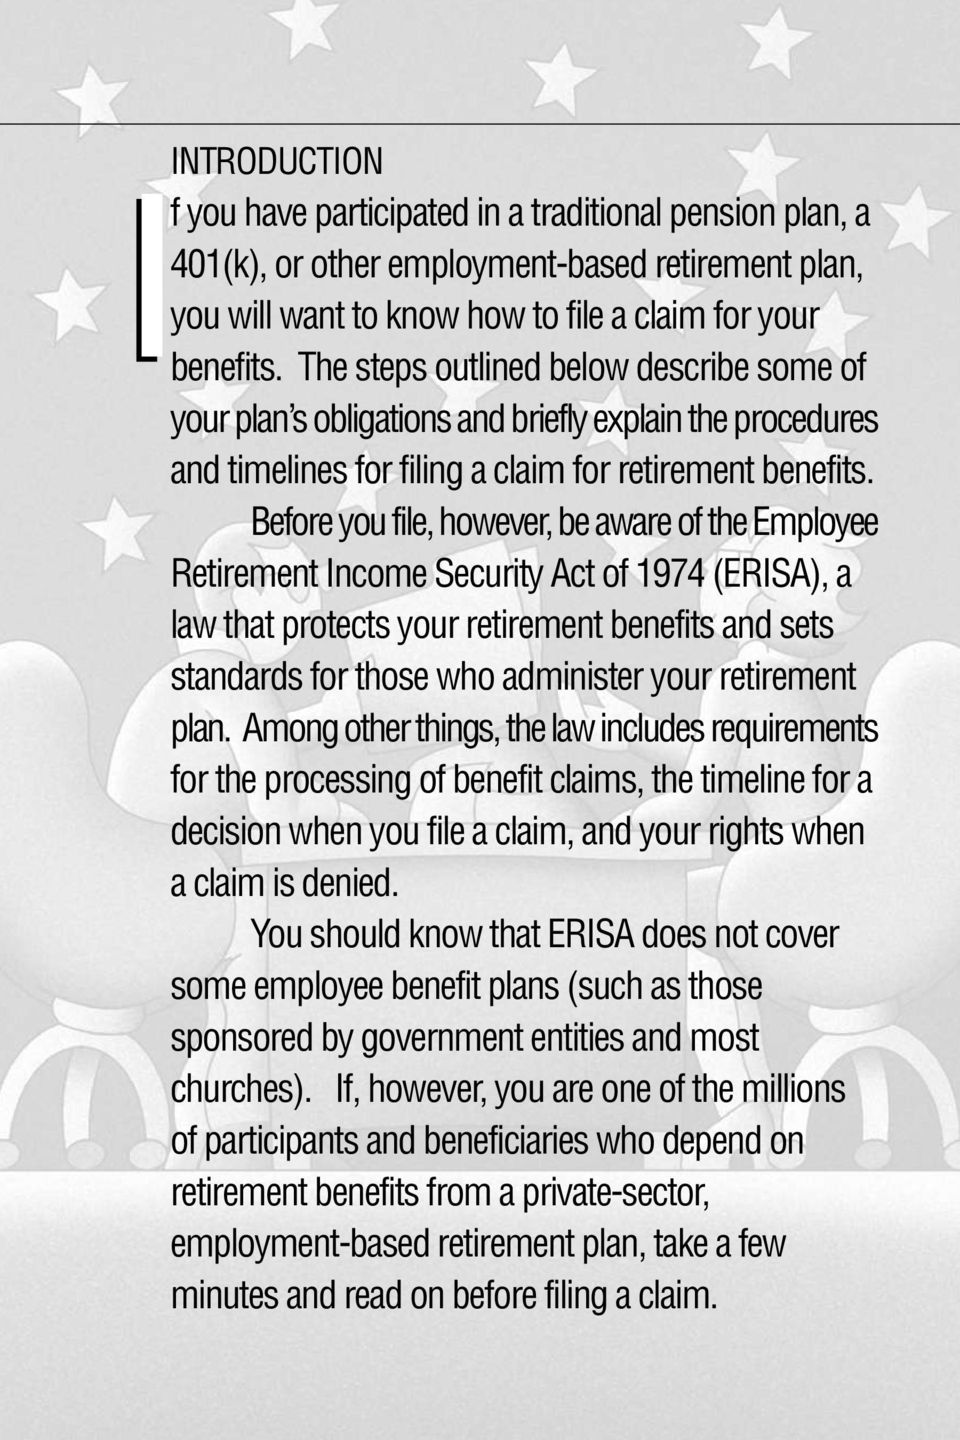 Before you file, however, be aware of the Employee Retirement Income Security Act of 1974 (ERISA), a law that protects your retirement benefits and sets standards for those who administer your